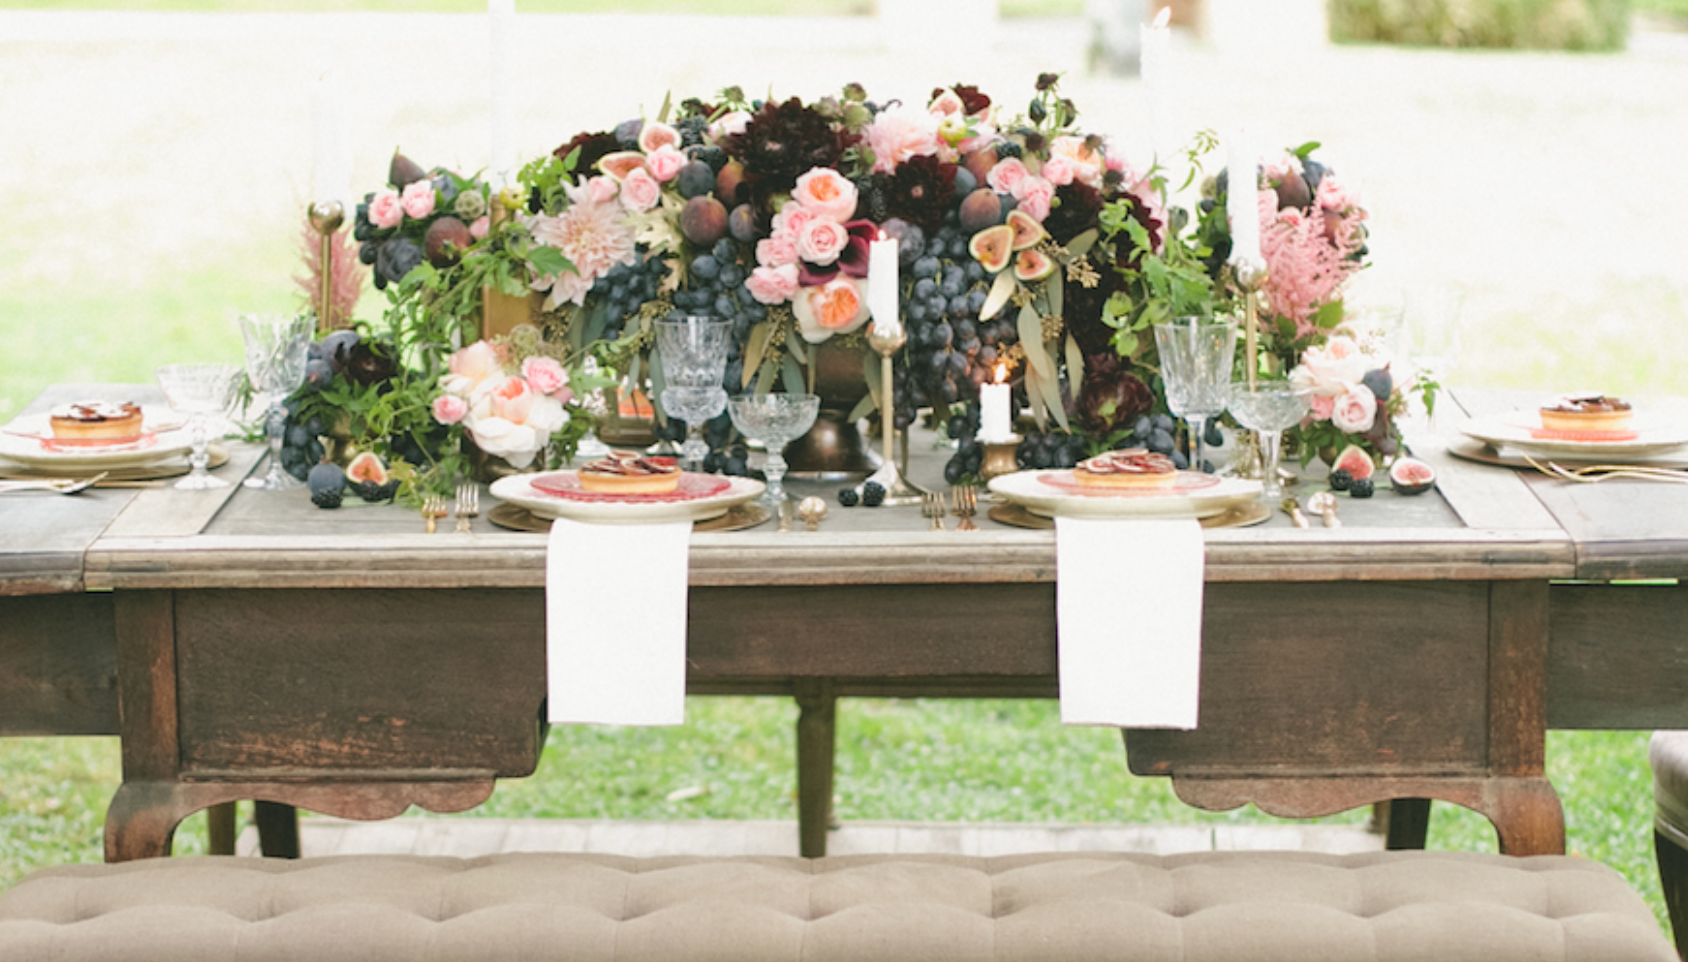 Stunning tables cape by Seed Floral including figs, grapes and pink florals.